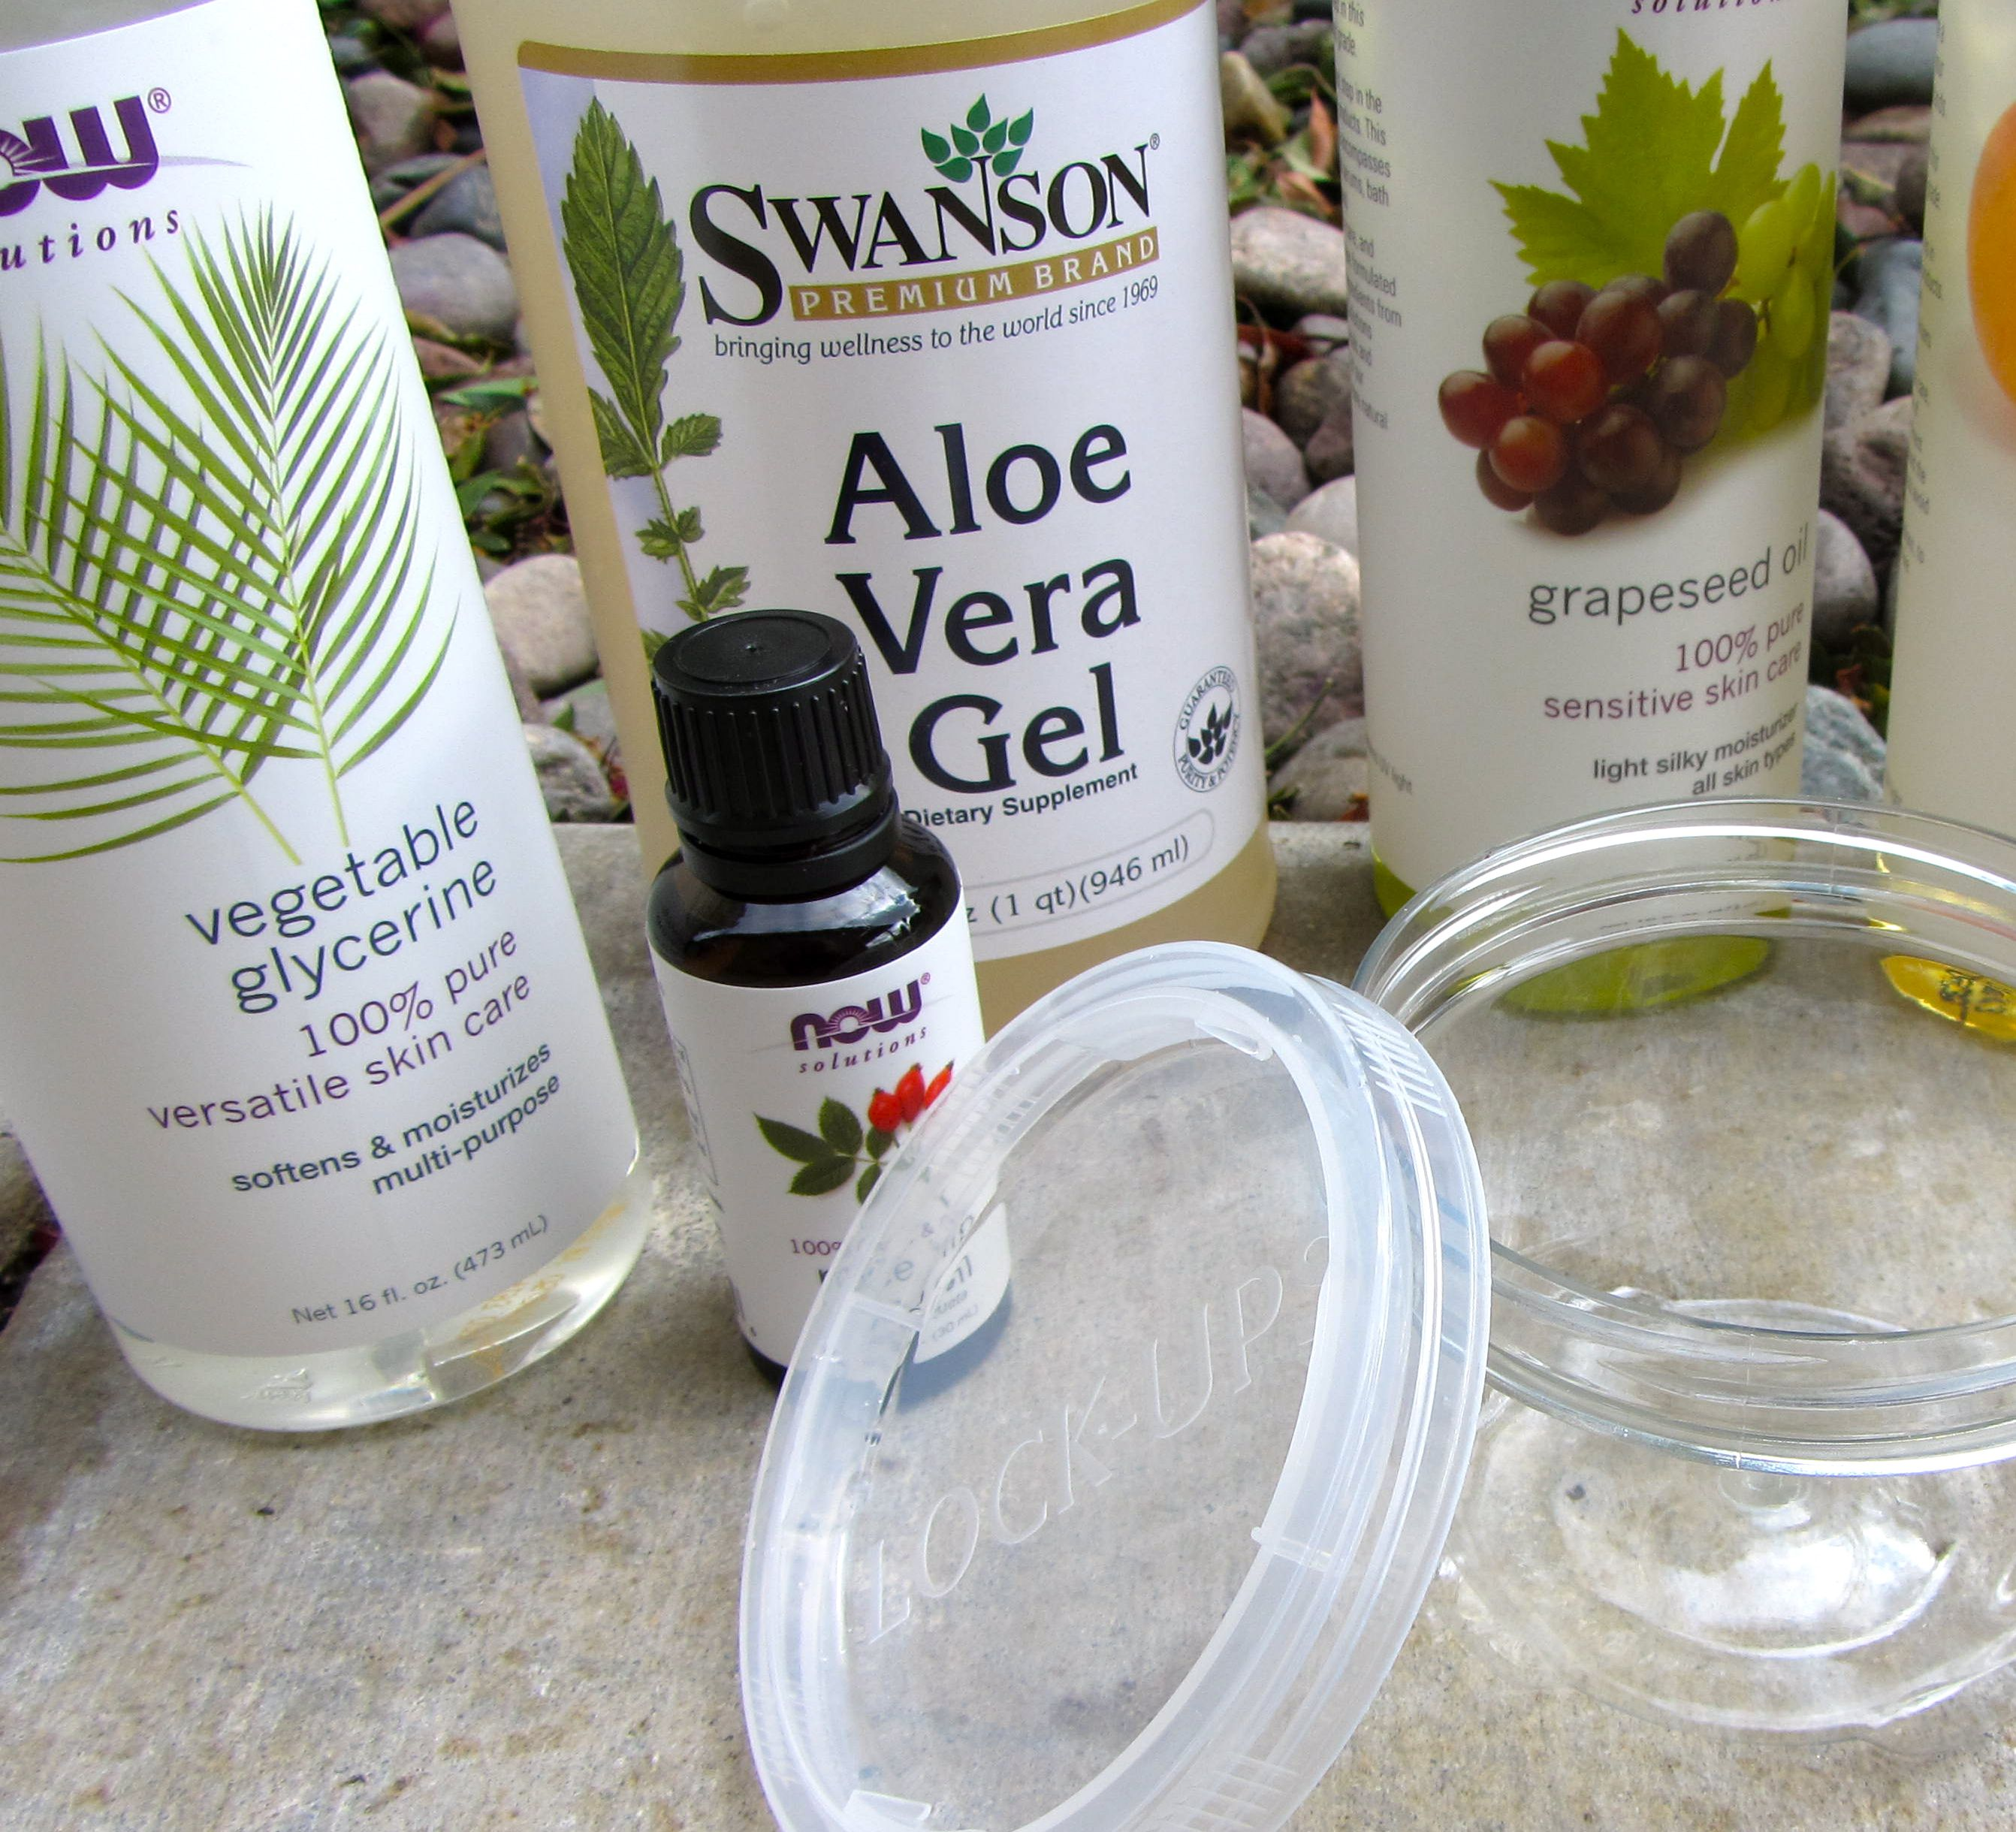 Diy Face Moisturizer Vegetable Glycerin Aloe Vera Gel Grapeseed